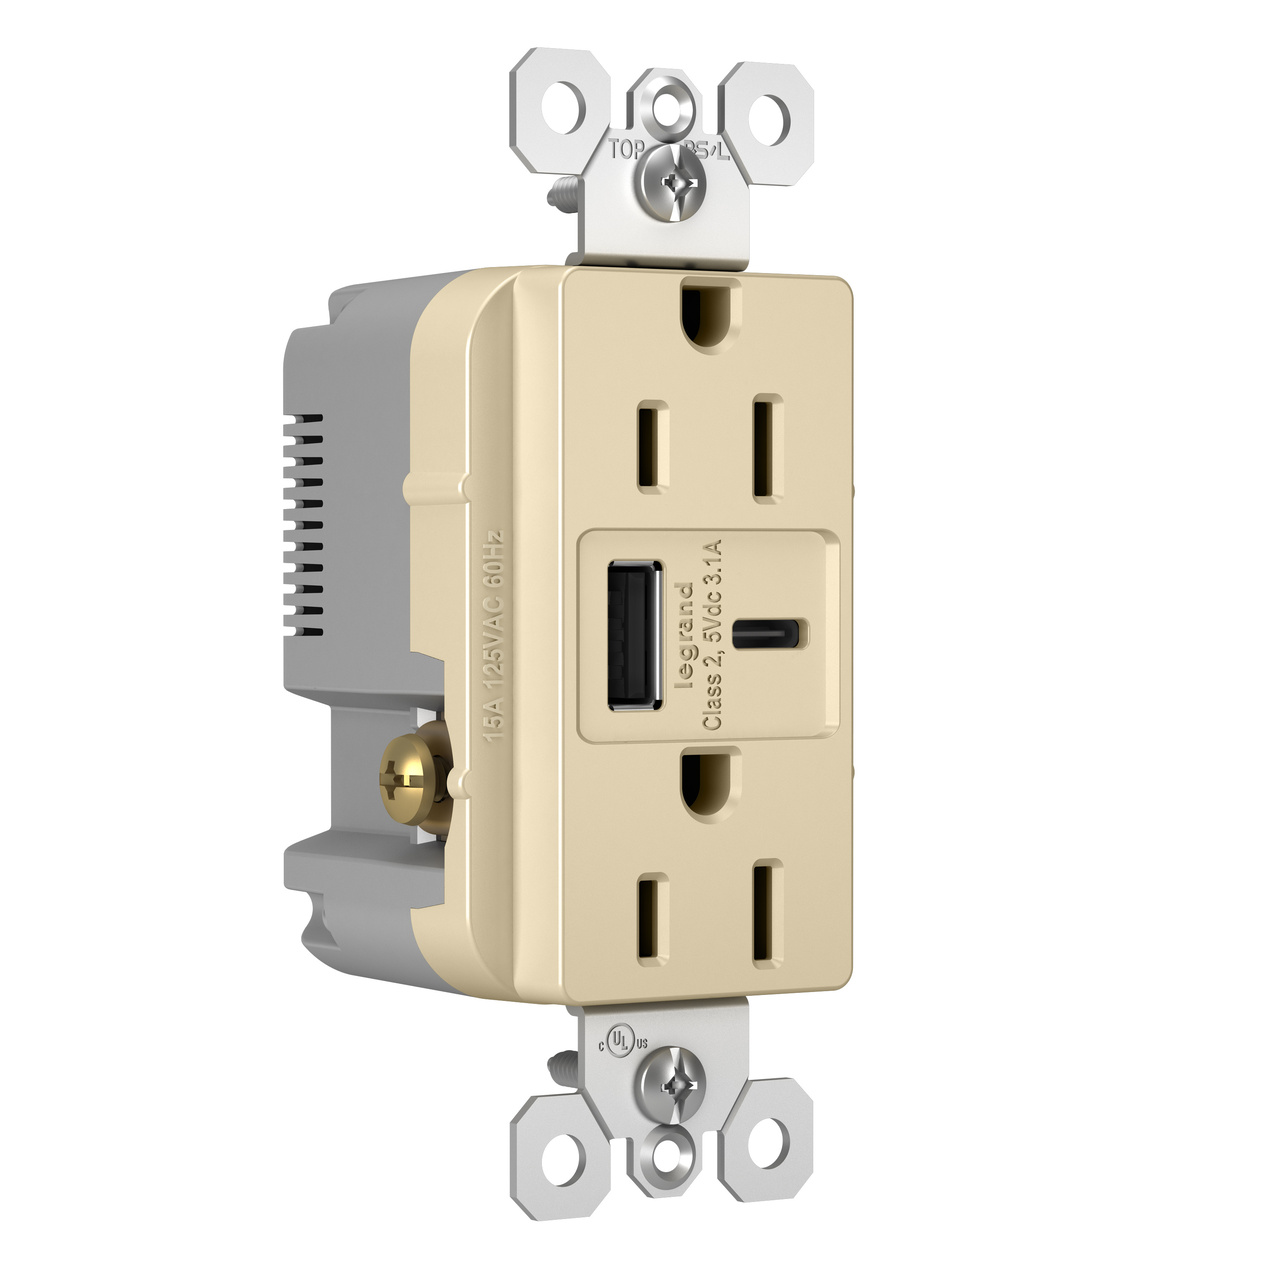 Hybrid Type A/C USB Chargers with Duplex 15A Tamper-Resistant Outlet, Ivory